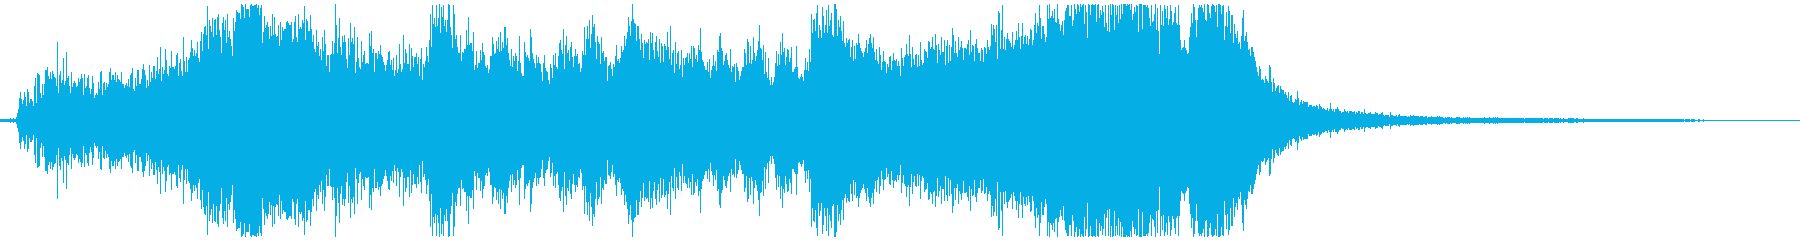 Fanfare for ceremonies, awards and awards ceremonies!'s reproduced waveform